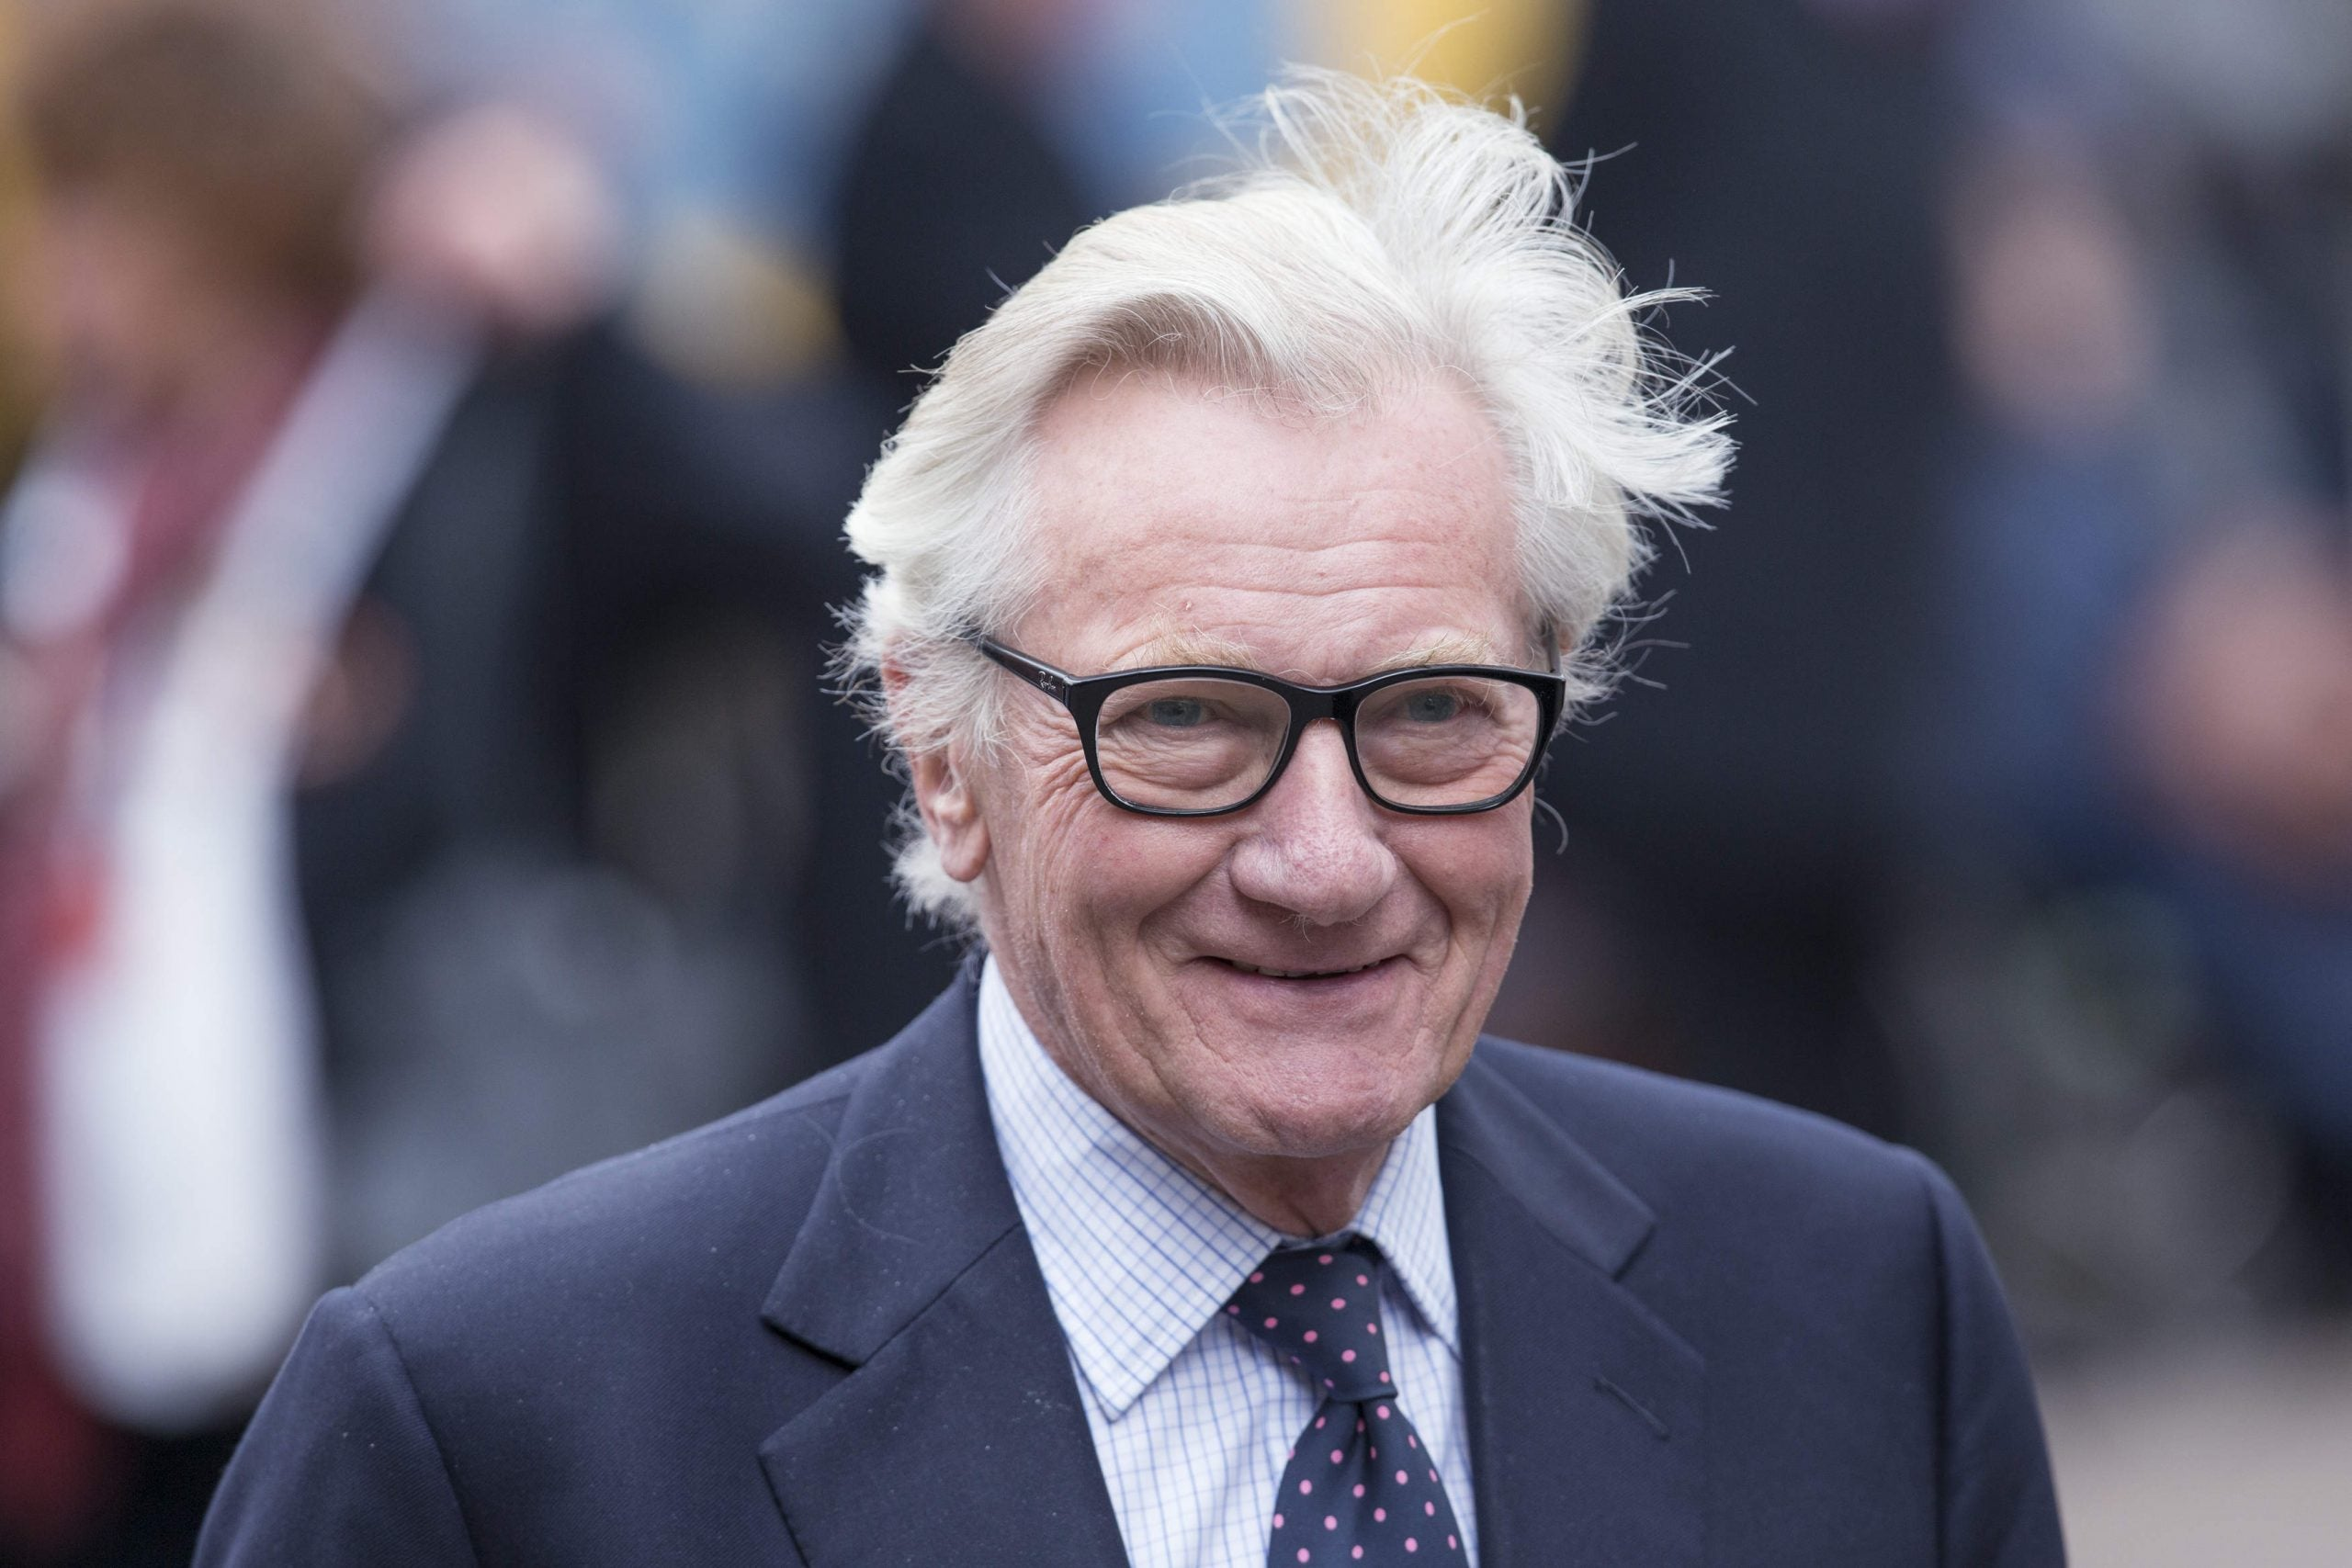 Why Michael Heseltine is still raging against Brexit